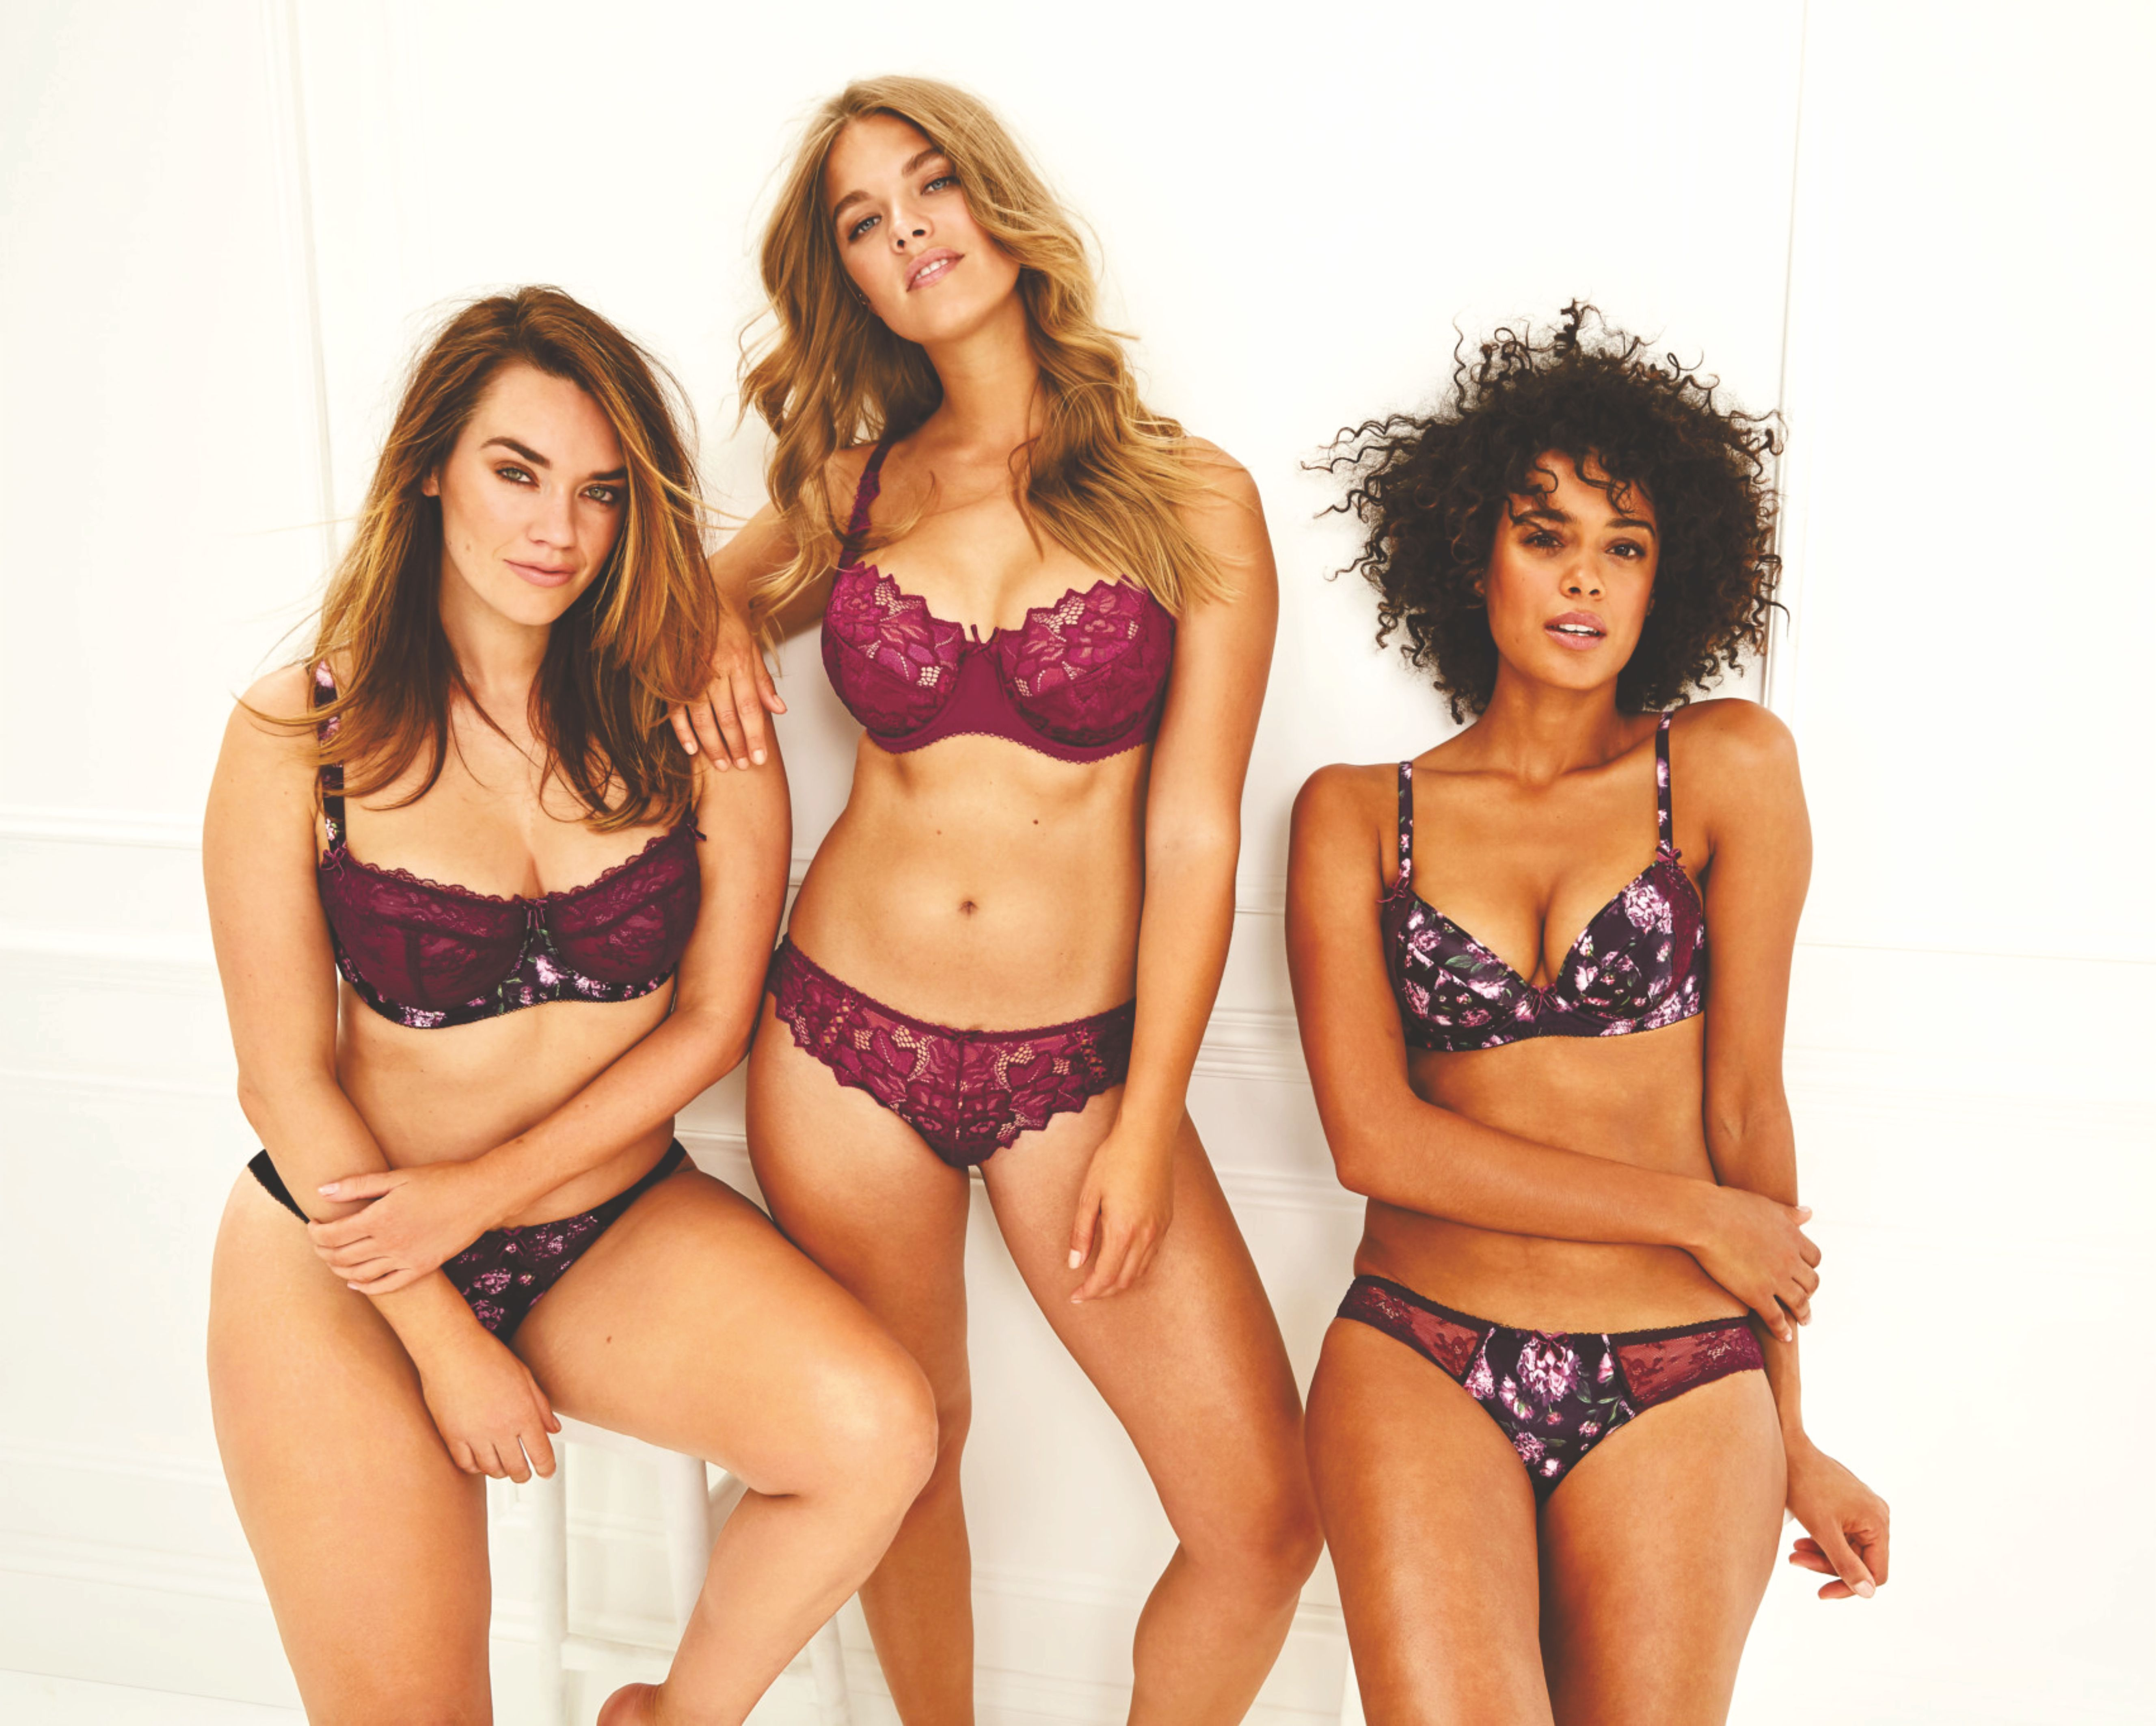 Figleaves promote body confidence and celebrate real women ...